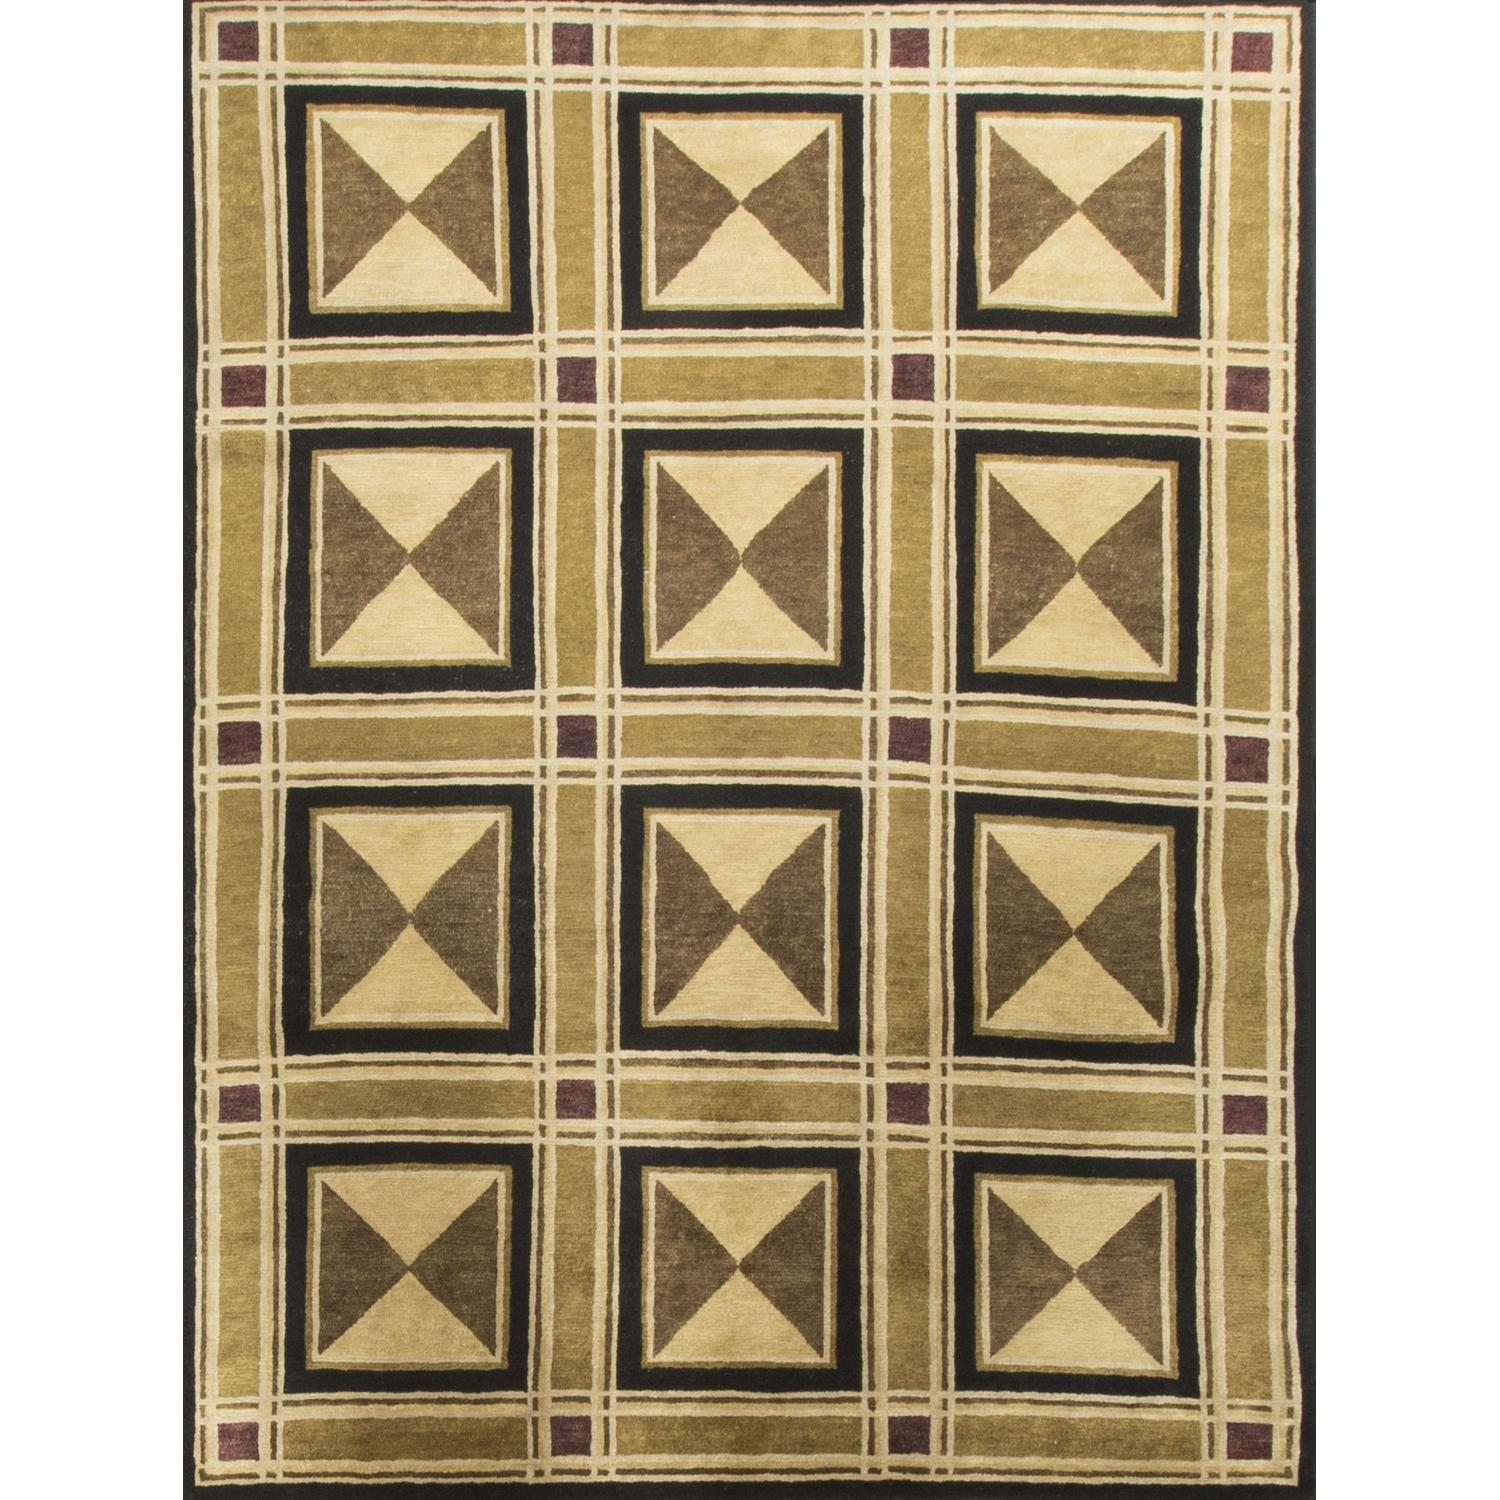 Modern Contemporary Hand Knotted Wool Rug in Beige/Brown/Black - image-0